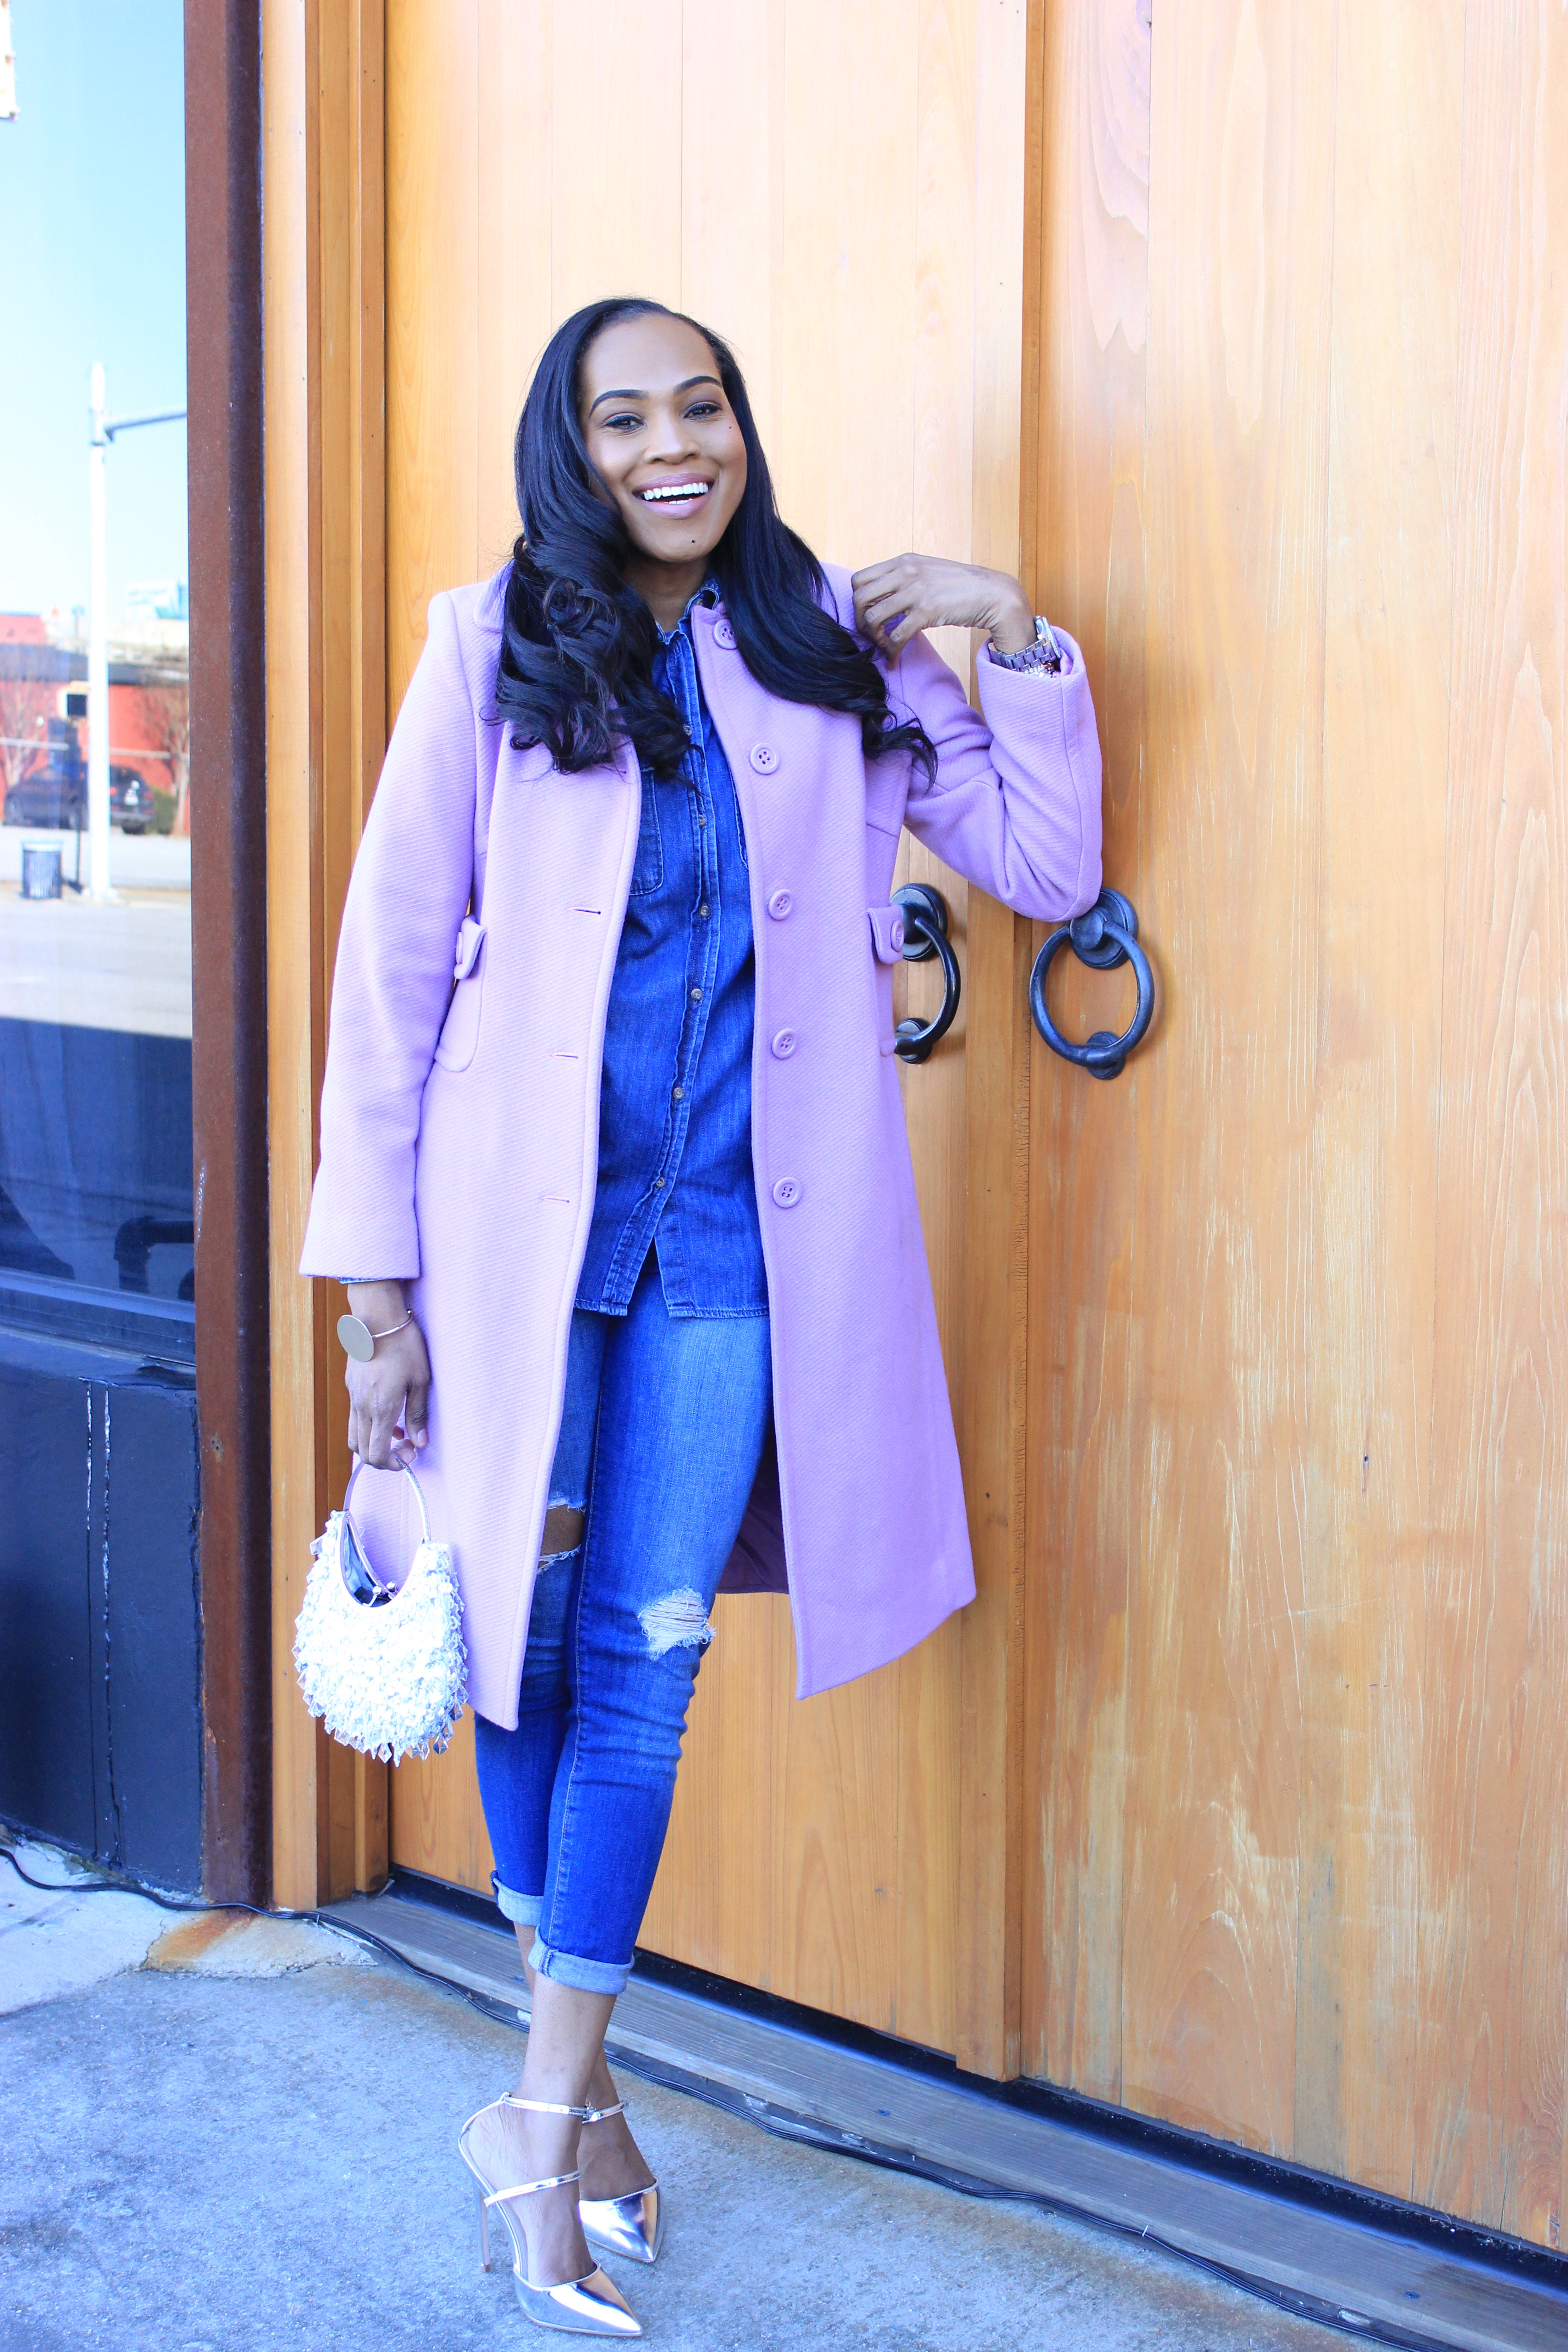 Style-Files-Merona-Denim-Button-front-shirt-distressed-denim- jeans- Lavender-Ninewest-wool-coat-silver-metallic-asos-picture-perfect-pointed-toe-heels-how-to-wear-denim-on-denim-oohlalablog-12